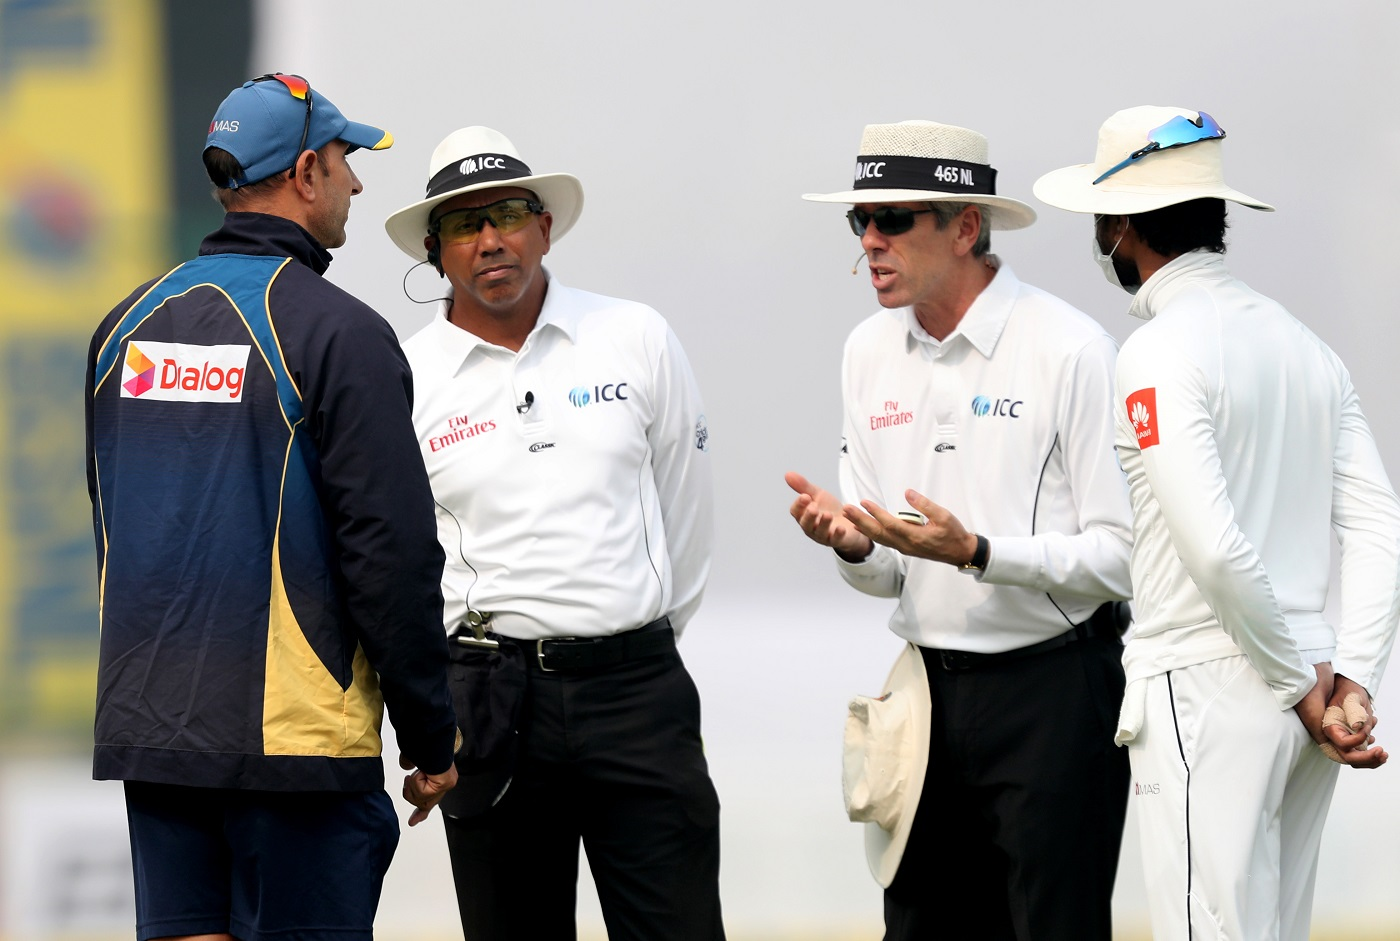 Scheduling Of Matches In Delhi During This Time Of The Year Will Be Considered: BCCI 2